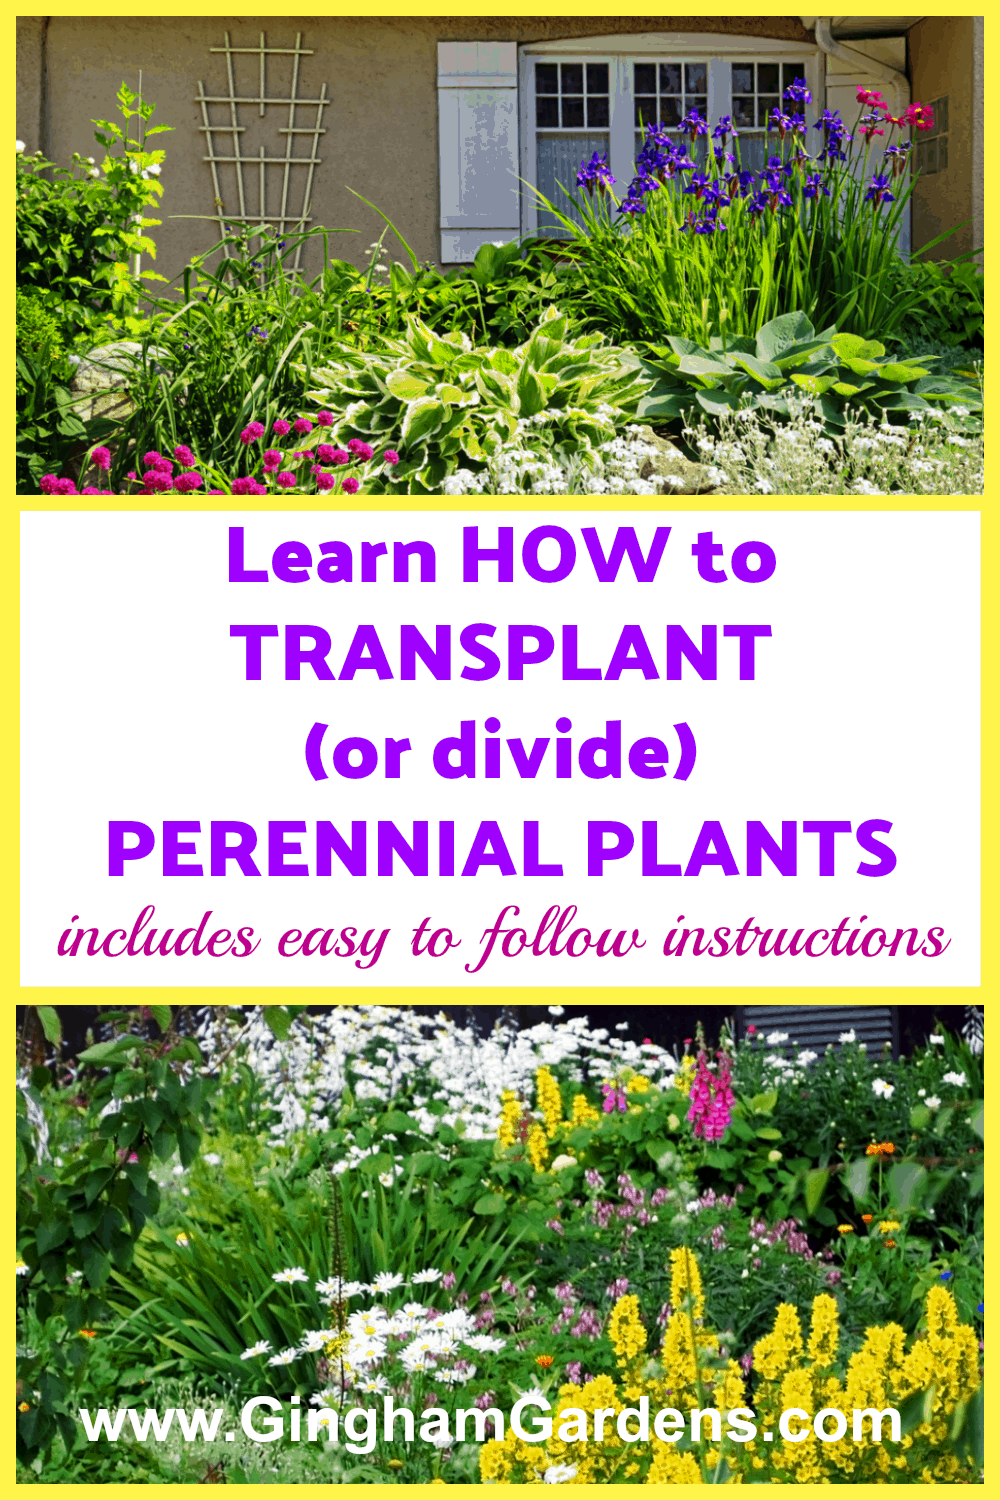 How to Transplant Perennial Plants